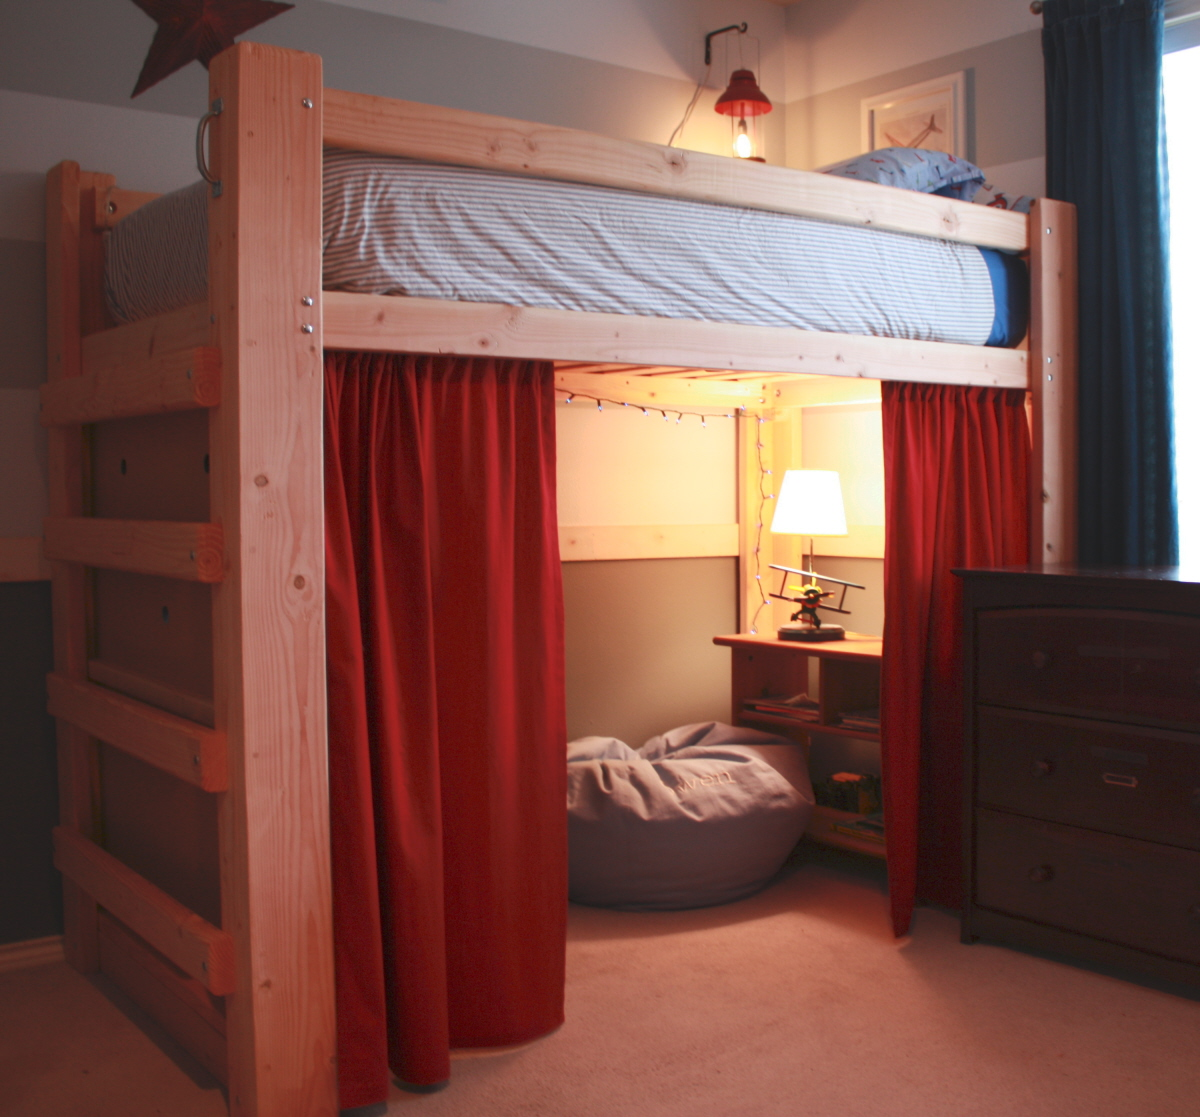 Bunk Bed Ideas For Small Rooms It 39s The Little Things That Make A House A Home The